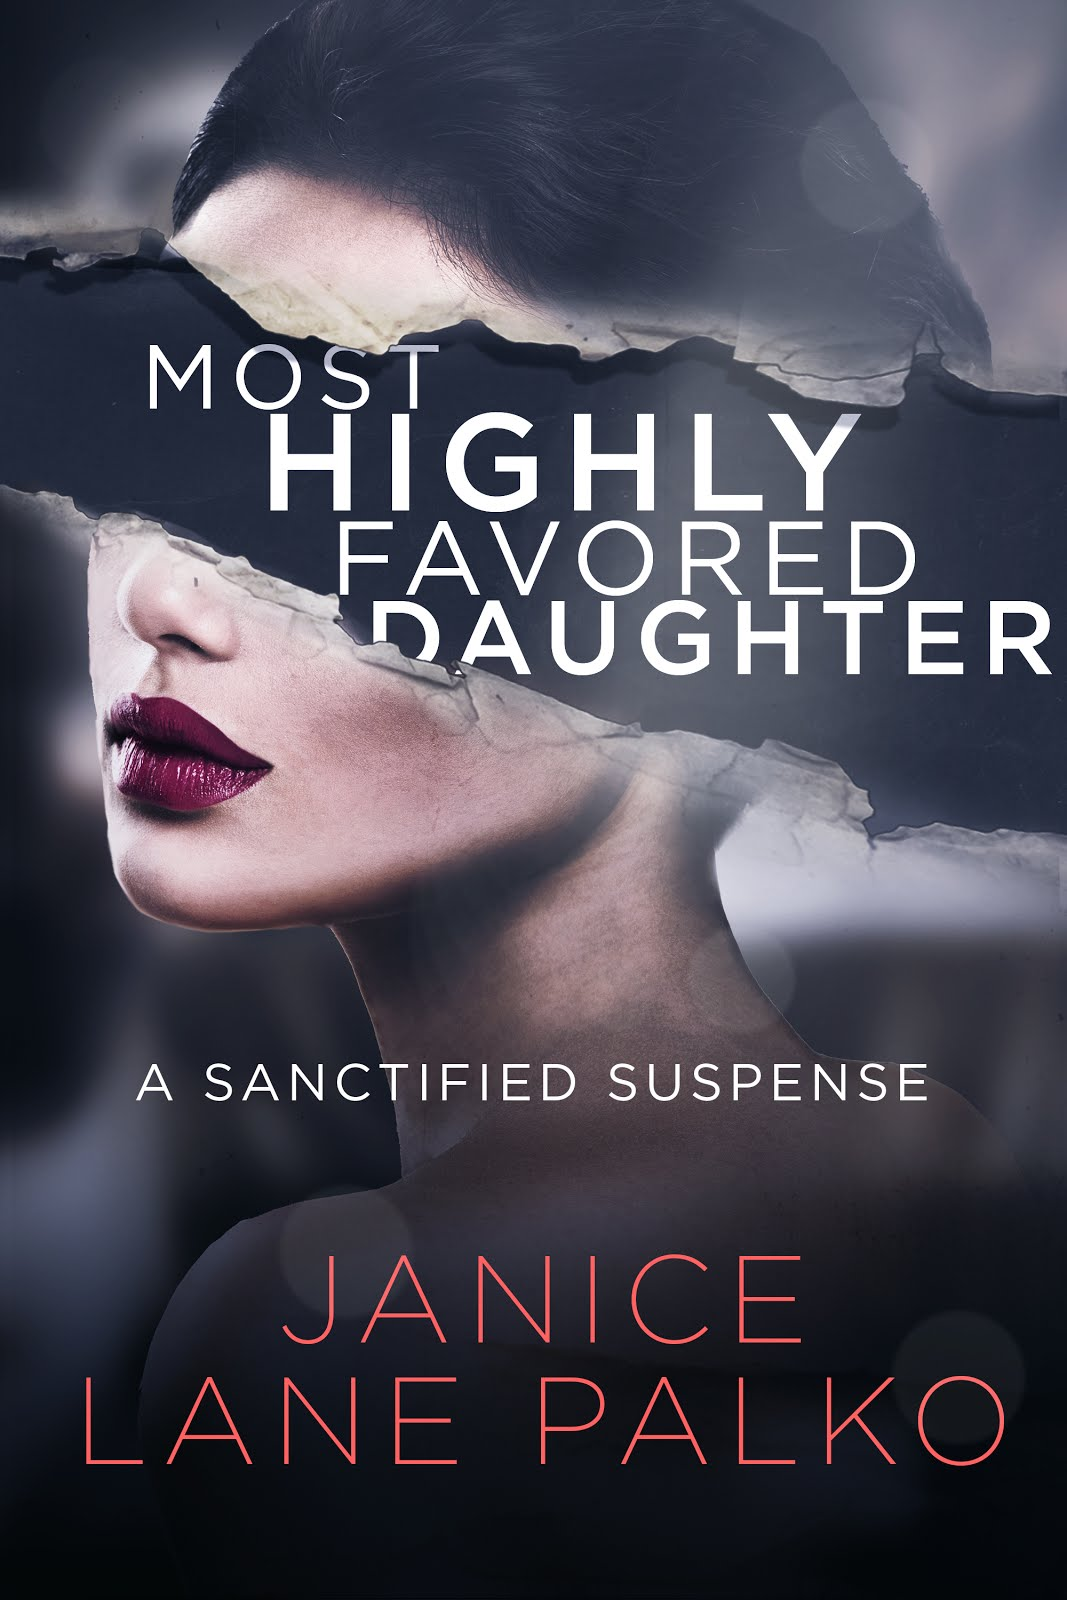 New Romantic Suspense Most Highly Favored Daughter Is Here!